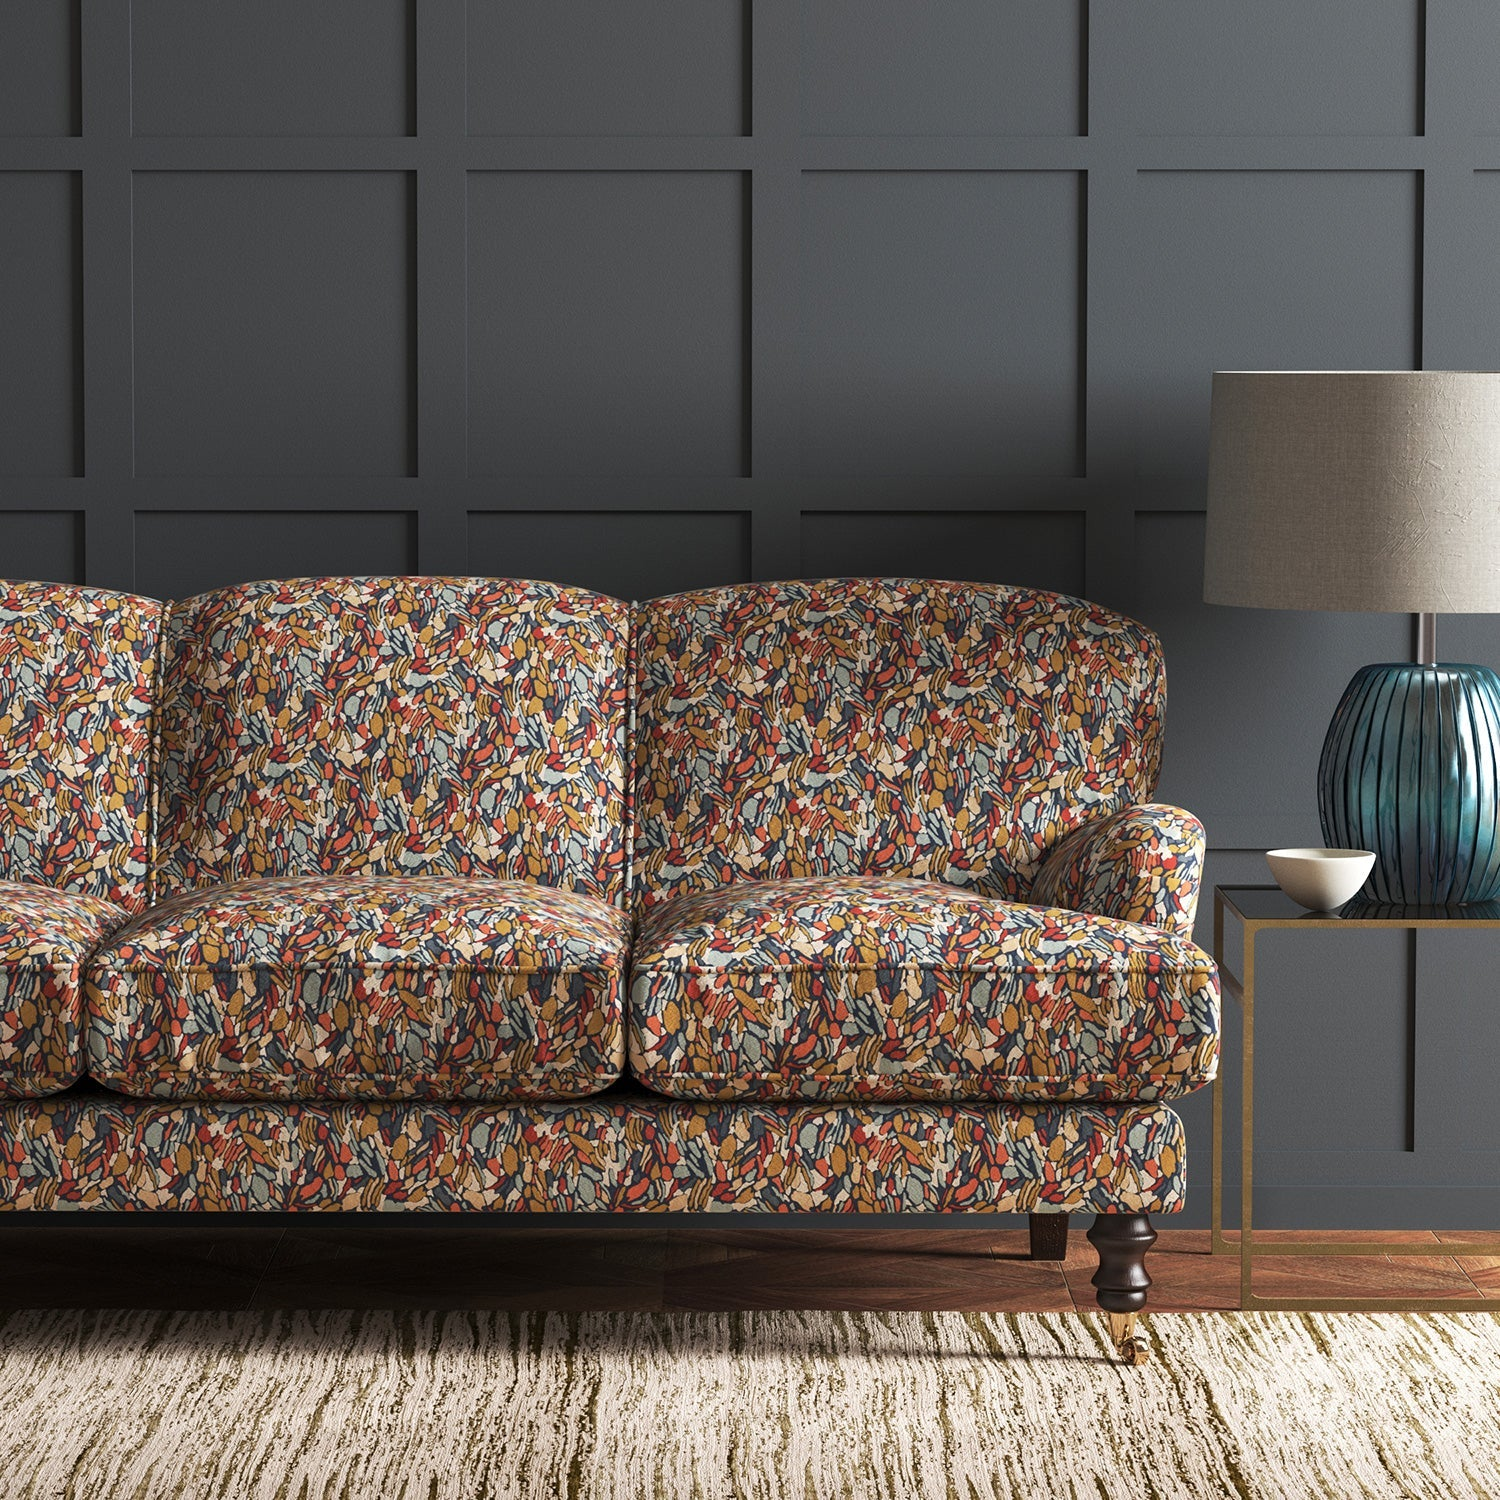 Velvet sofa in a stain resistant velvet fabric with a multicoloured abstract design